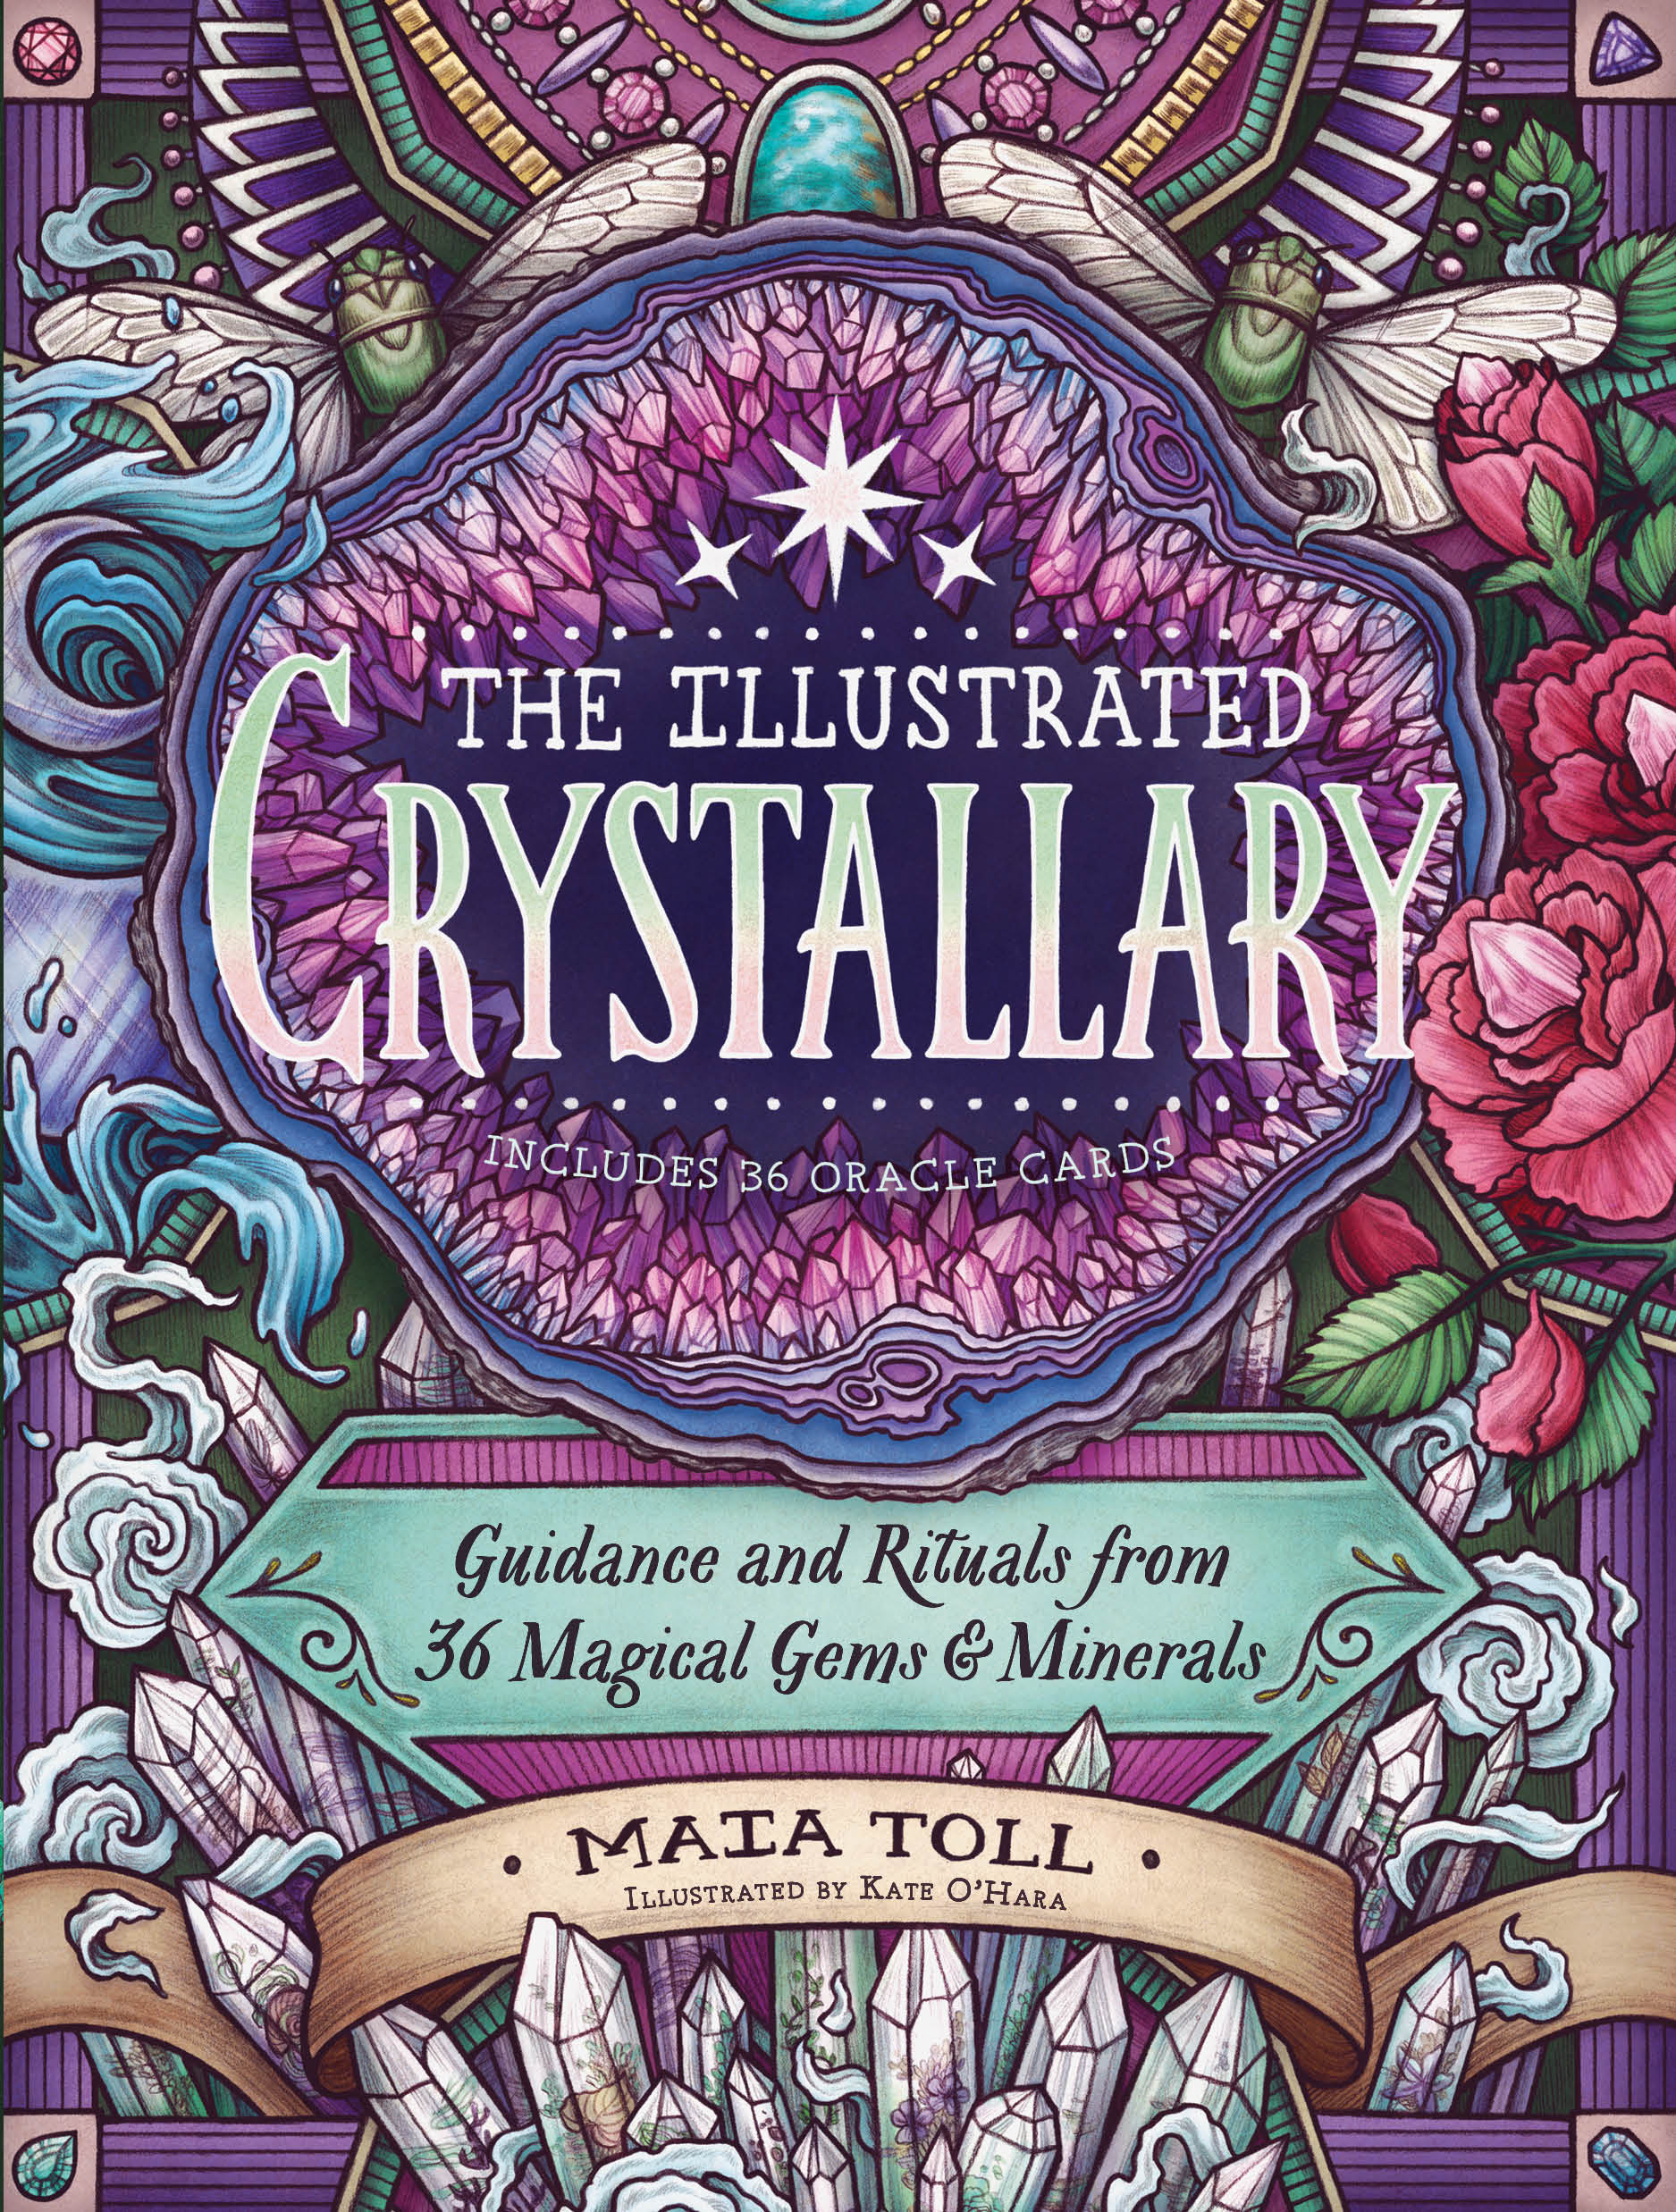 The Illustrated Crystallary : Guidance and Rituals from 36 Magical Gems and Minerals | Faith & Spirituality